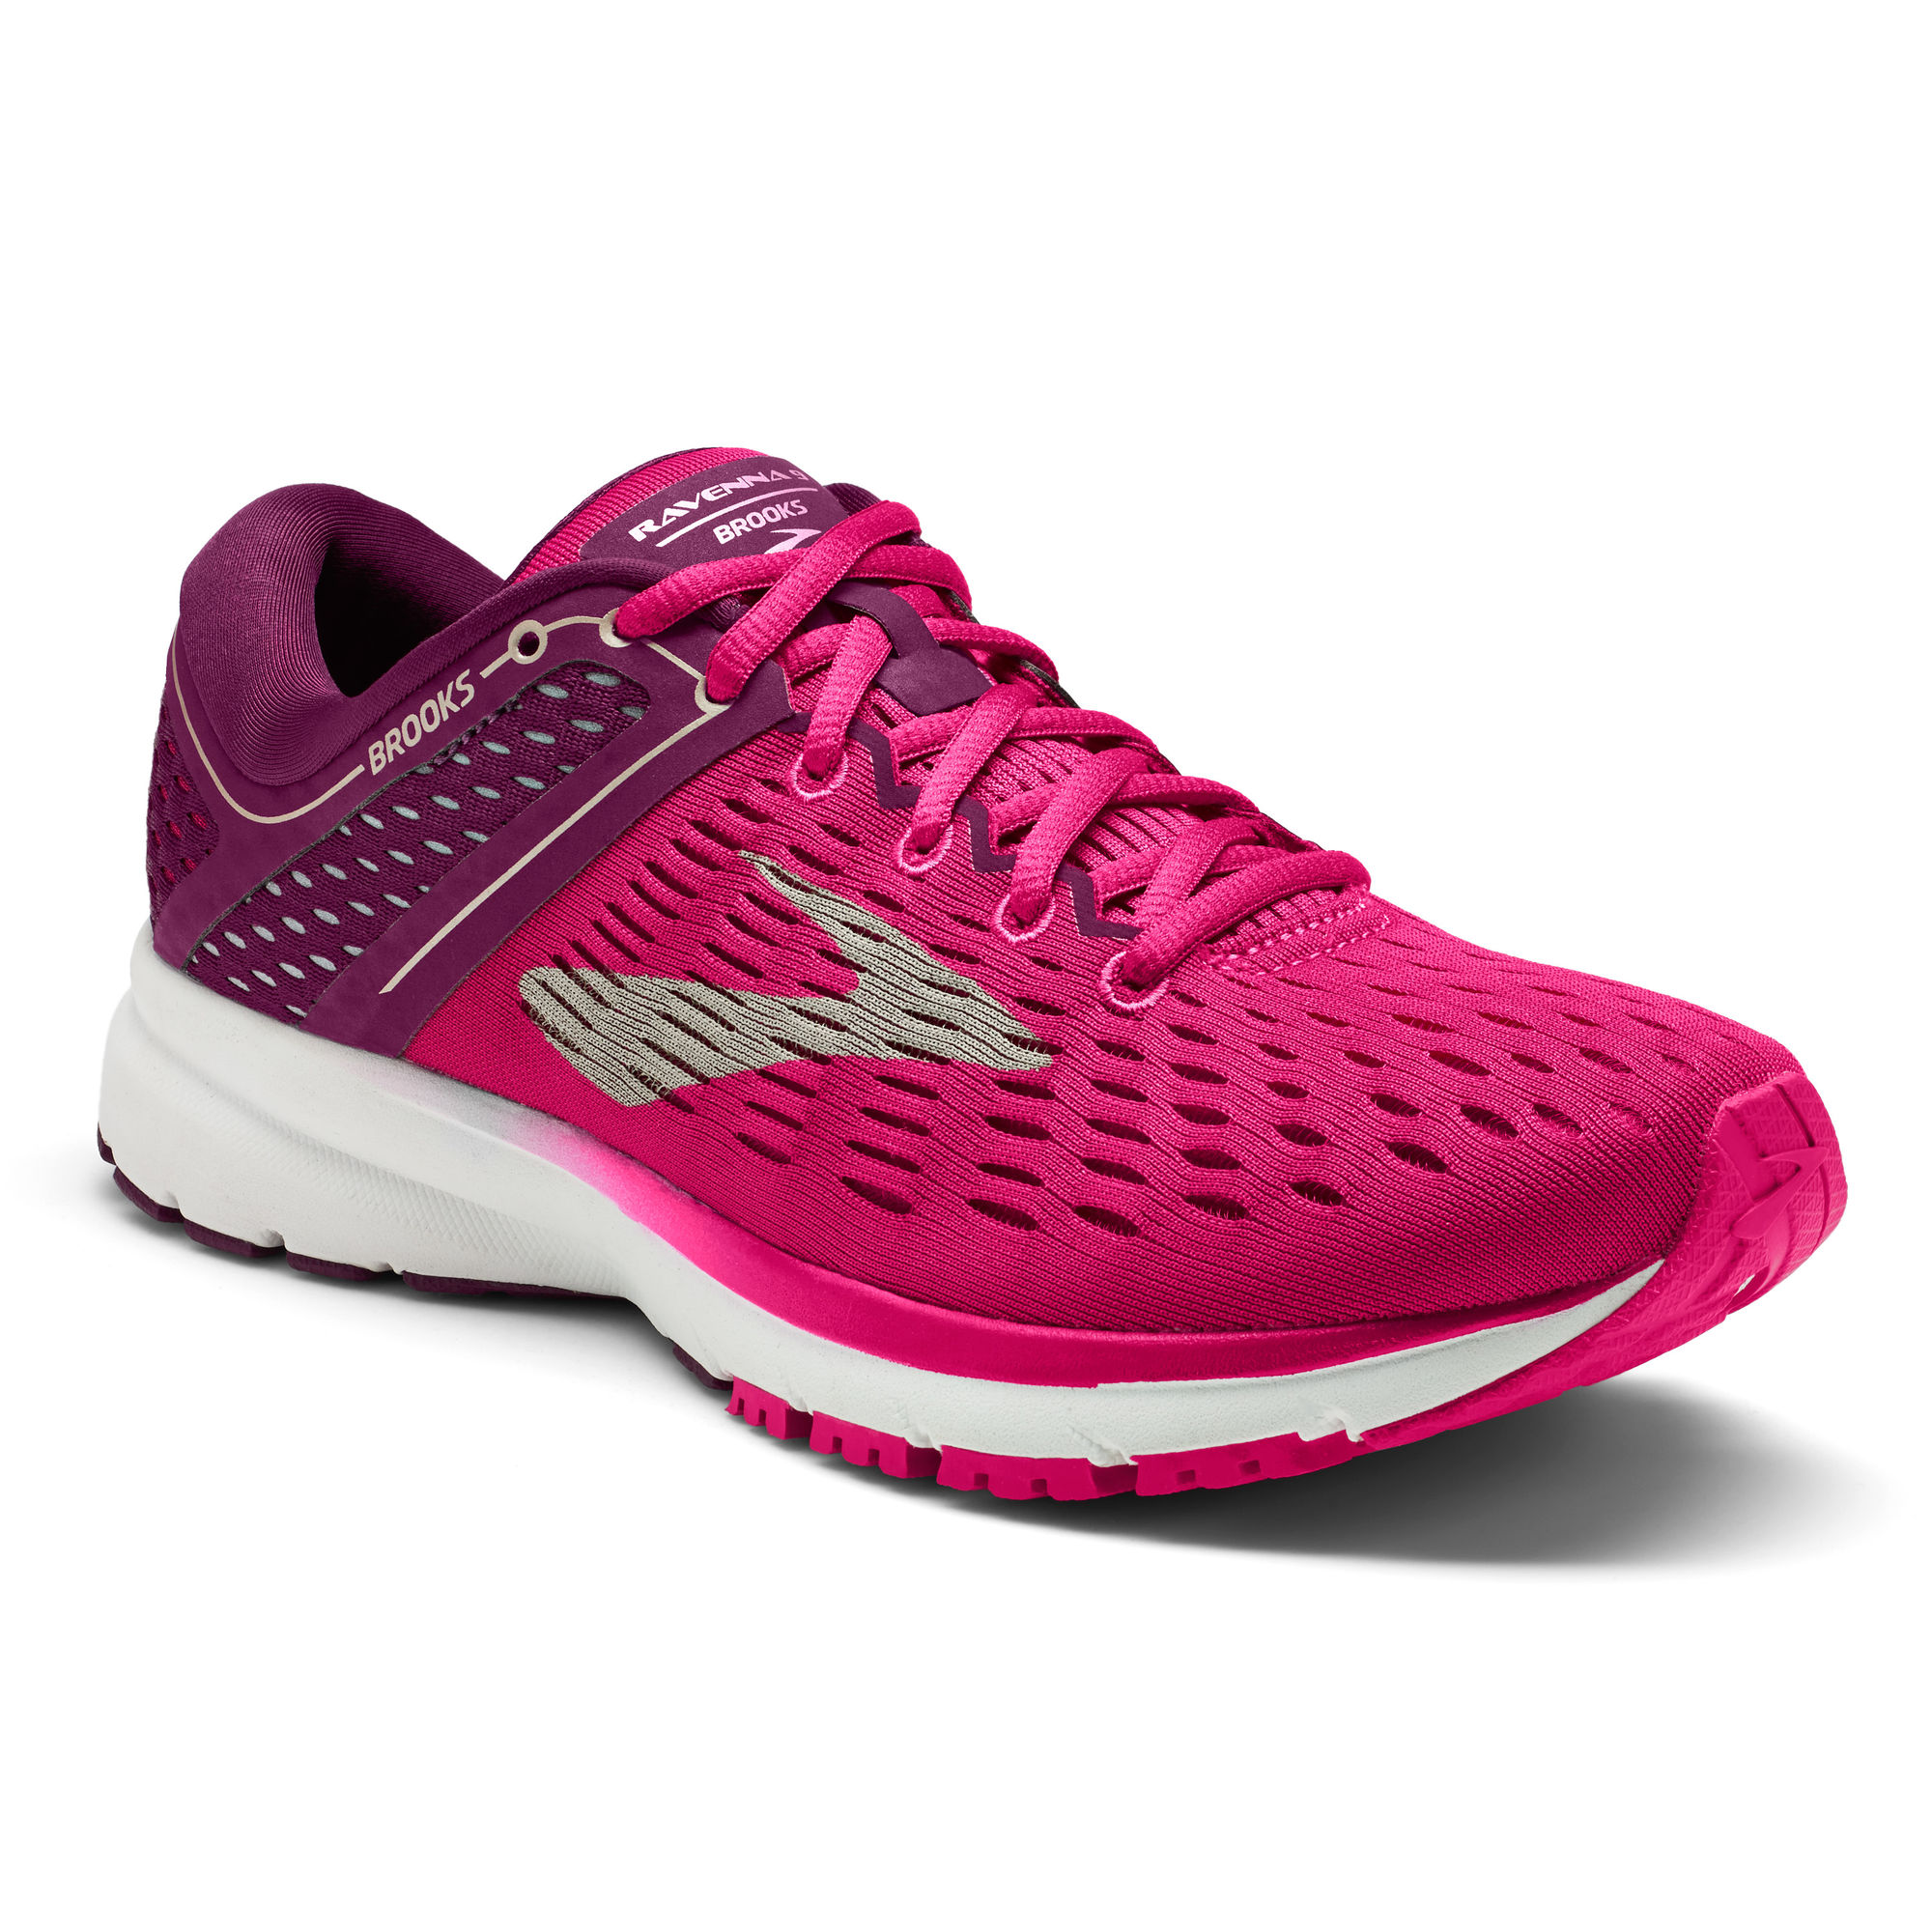 Brooks Lady Ravenna 9 in Pink